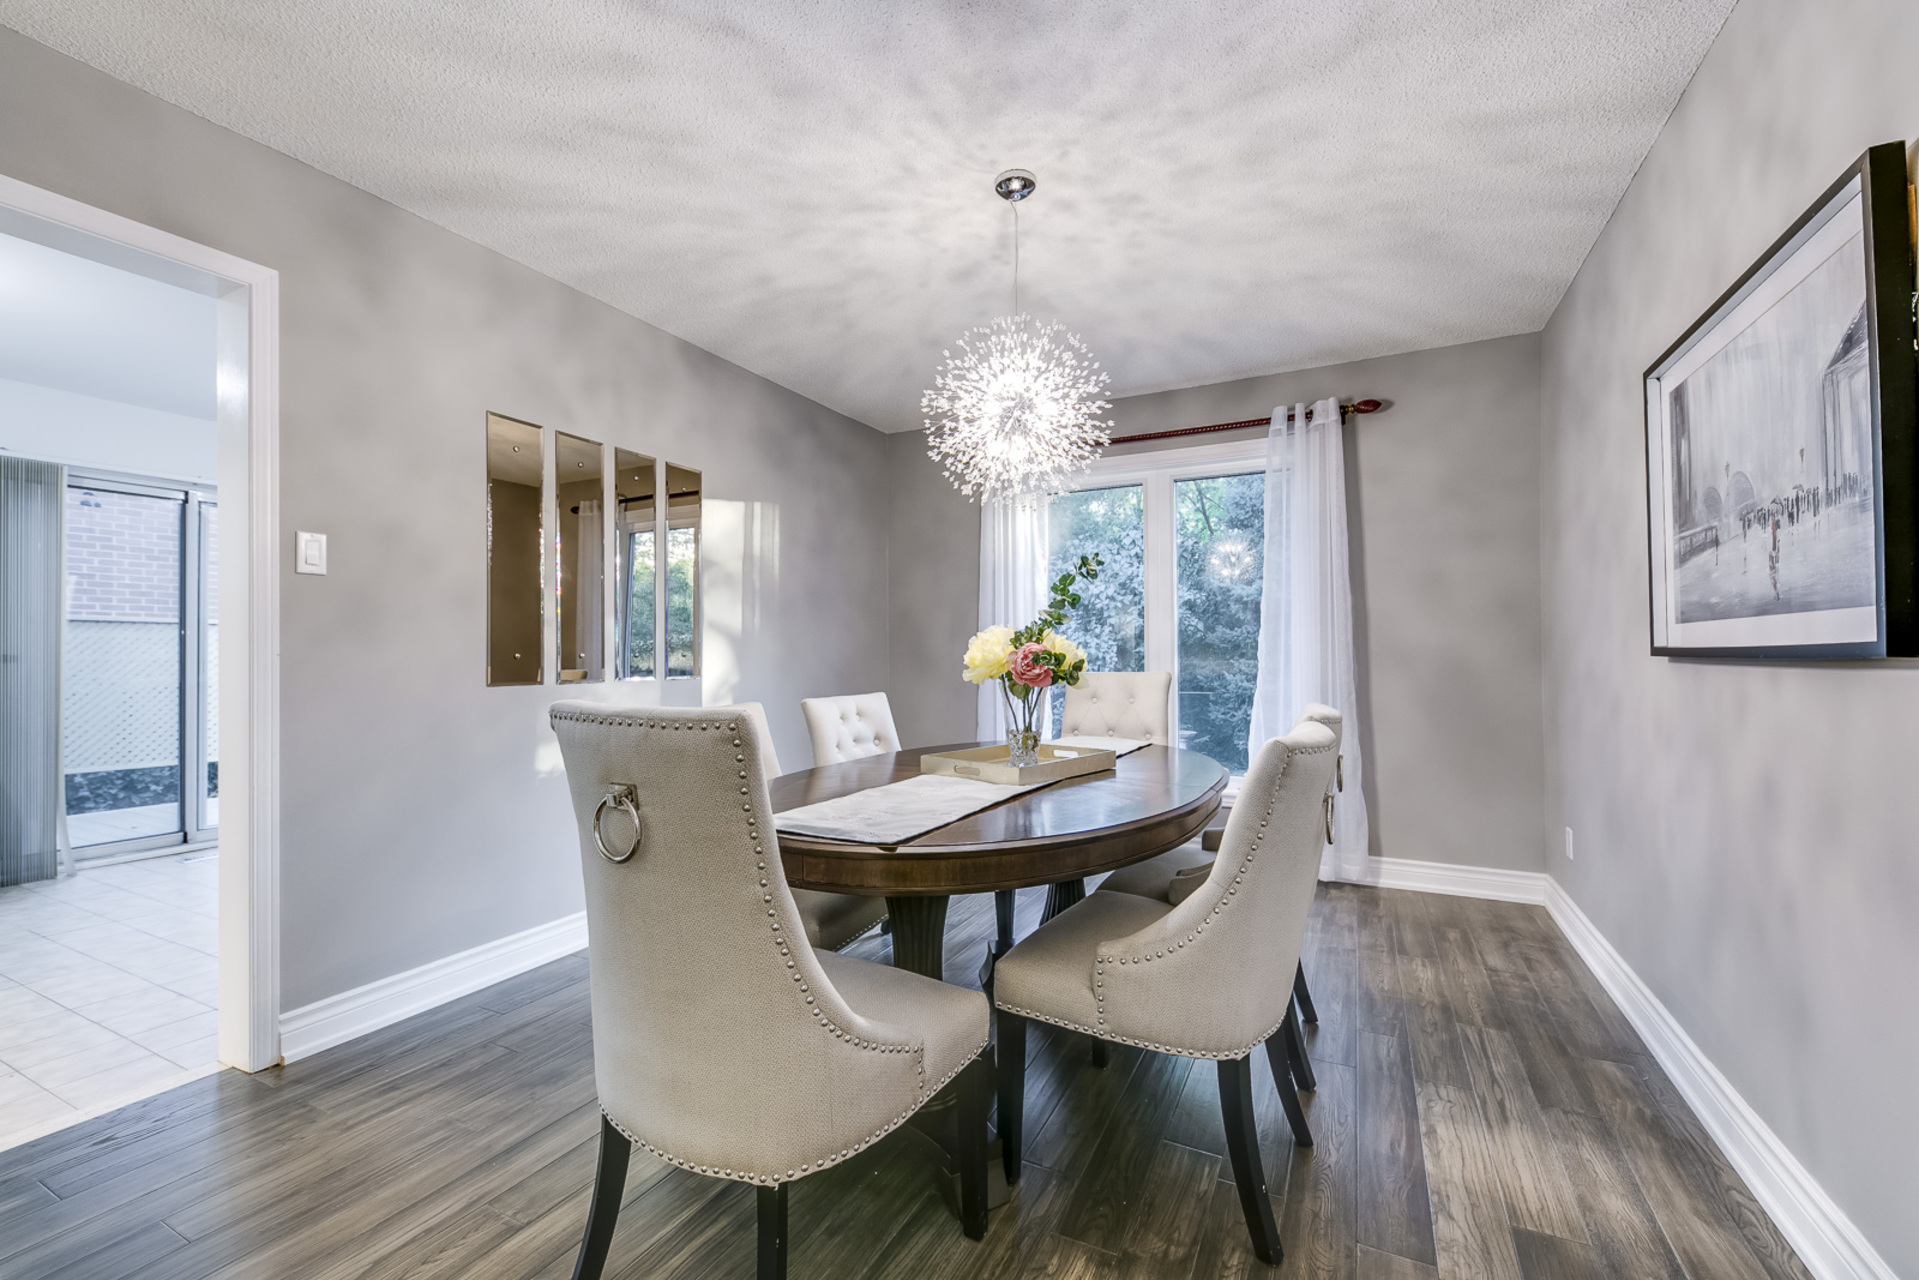 mls-29 at 4246 Wakefield Crescent, Creditview, Mississauga